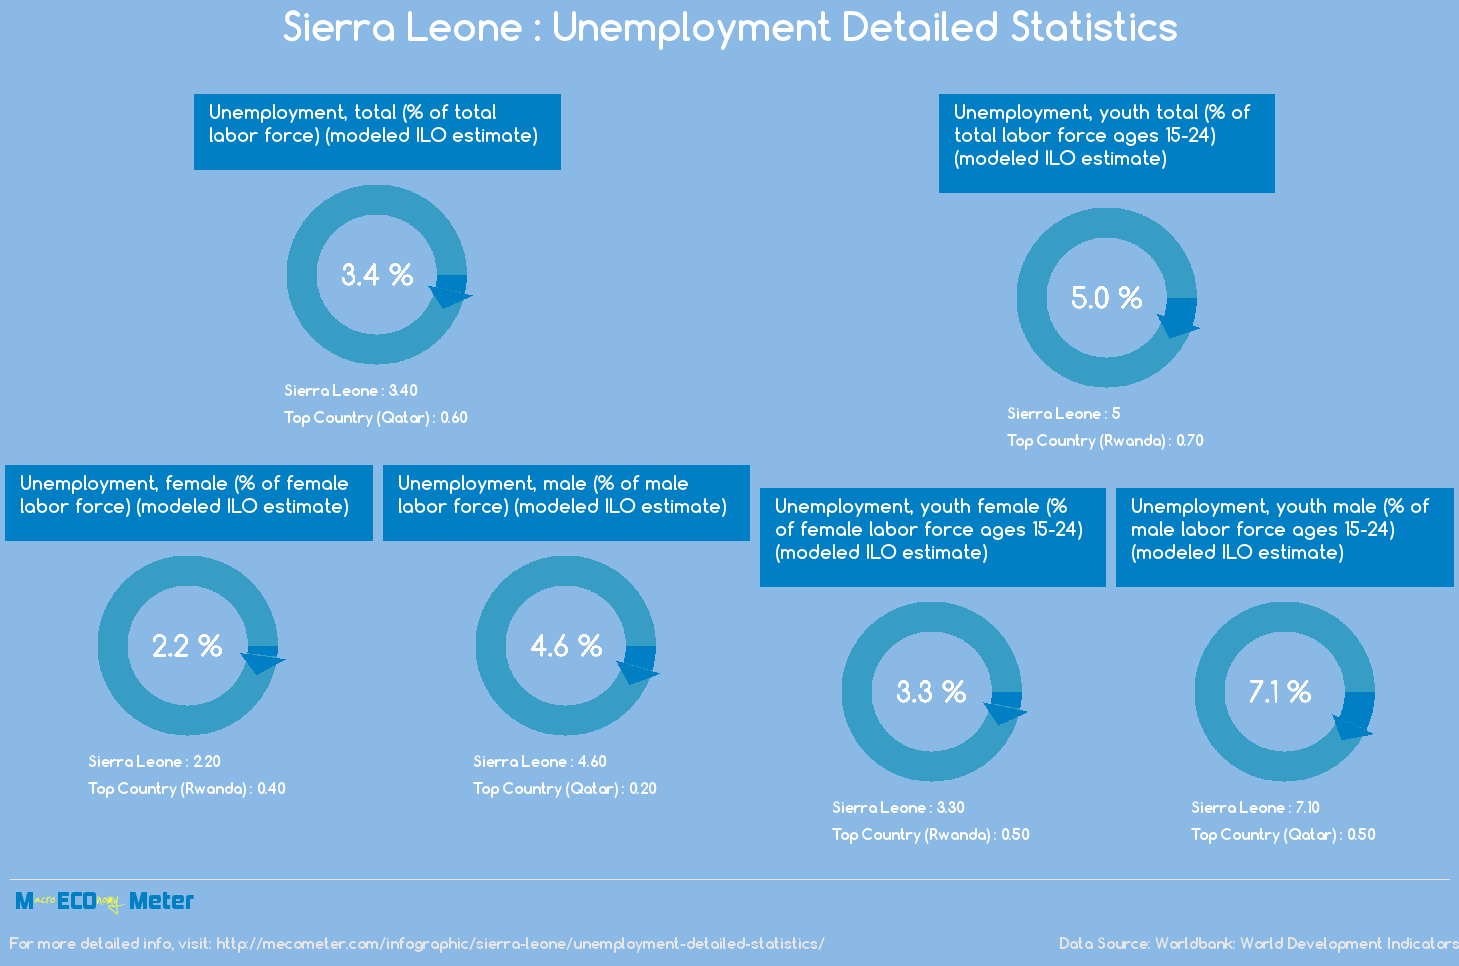 Sierra Leone : Unemployment Detailed Statistics